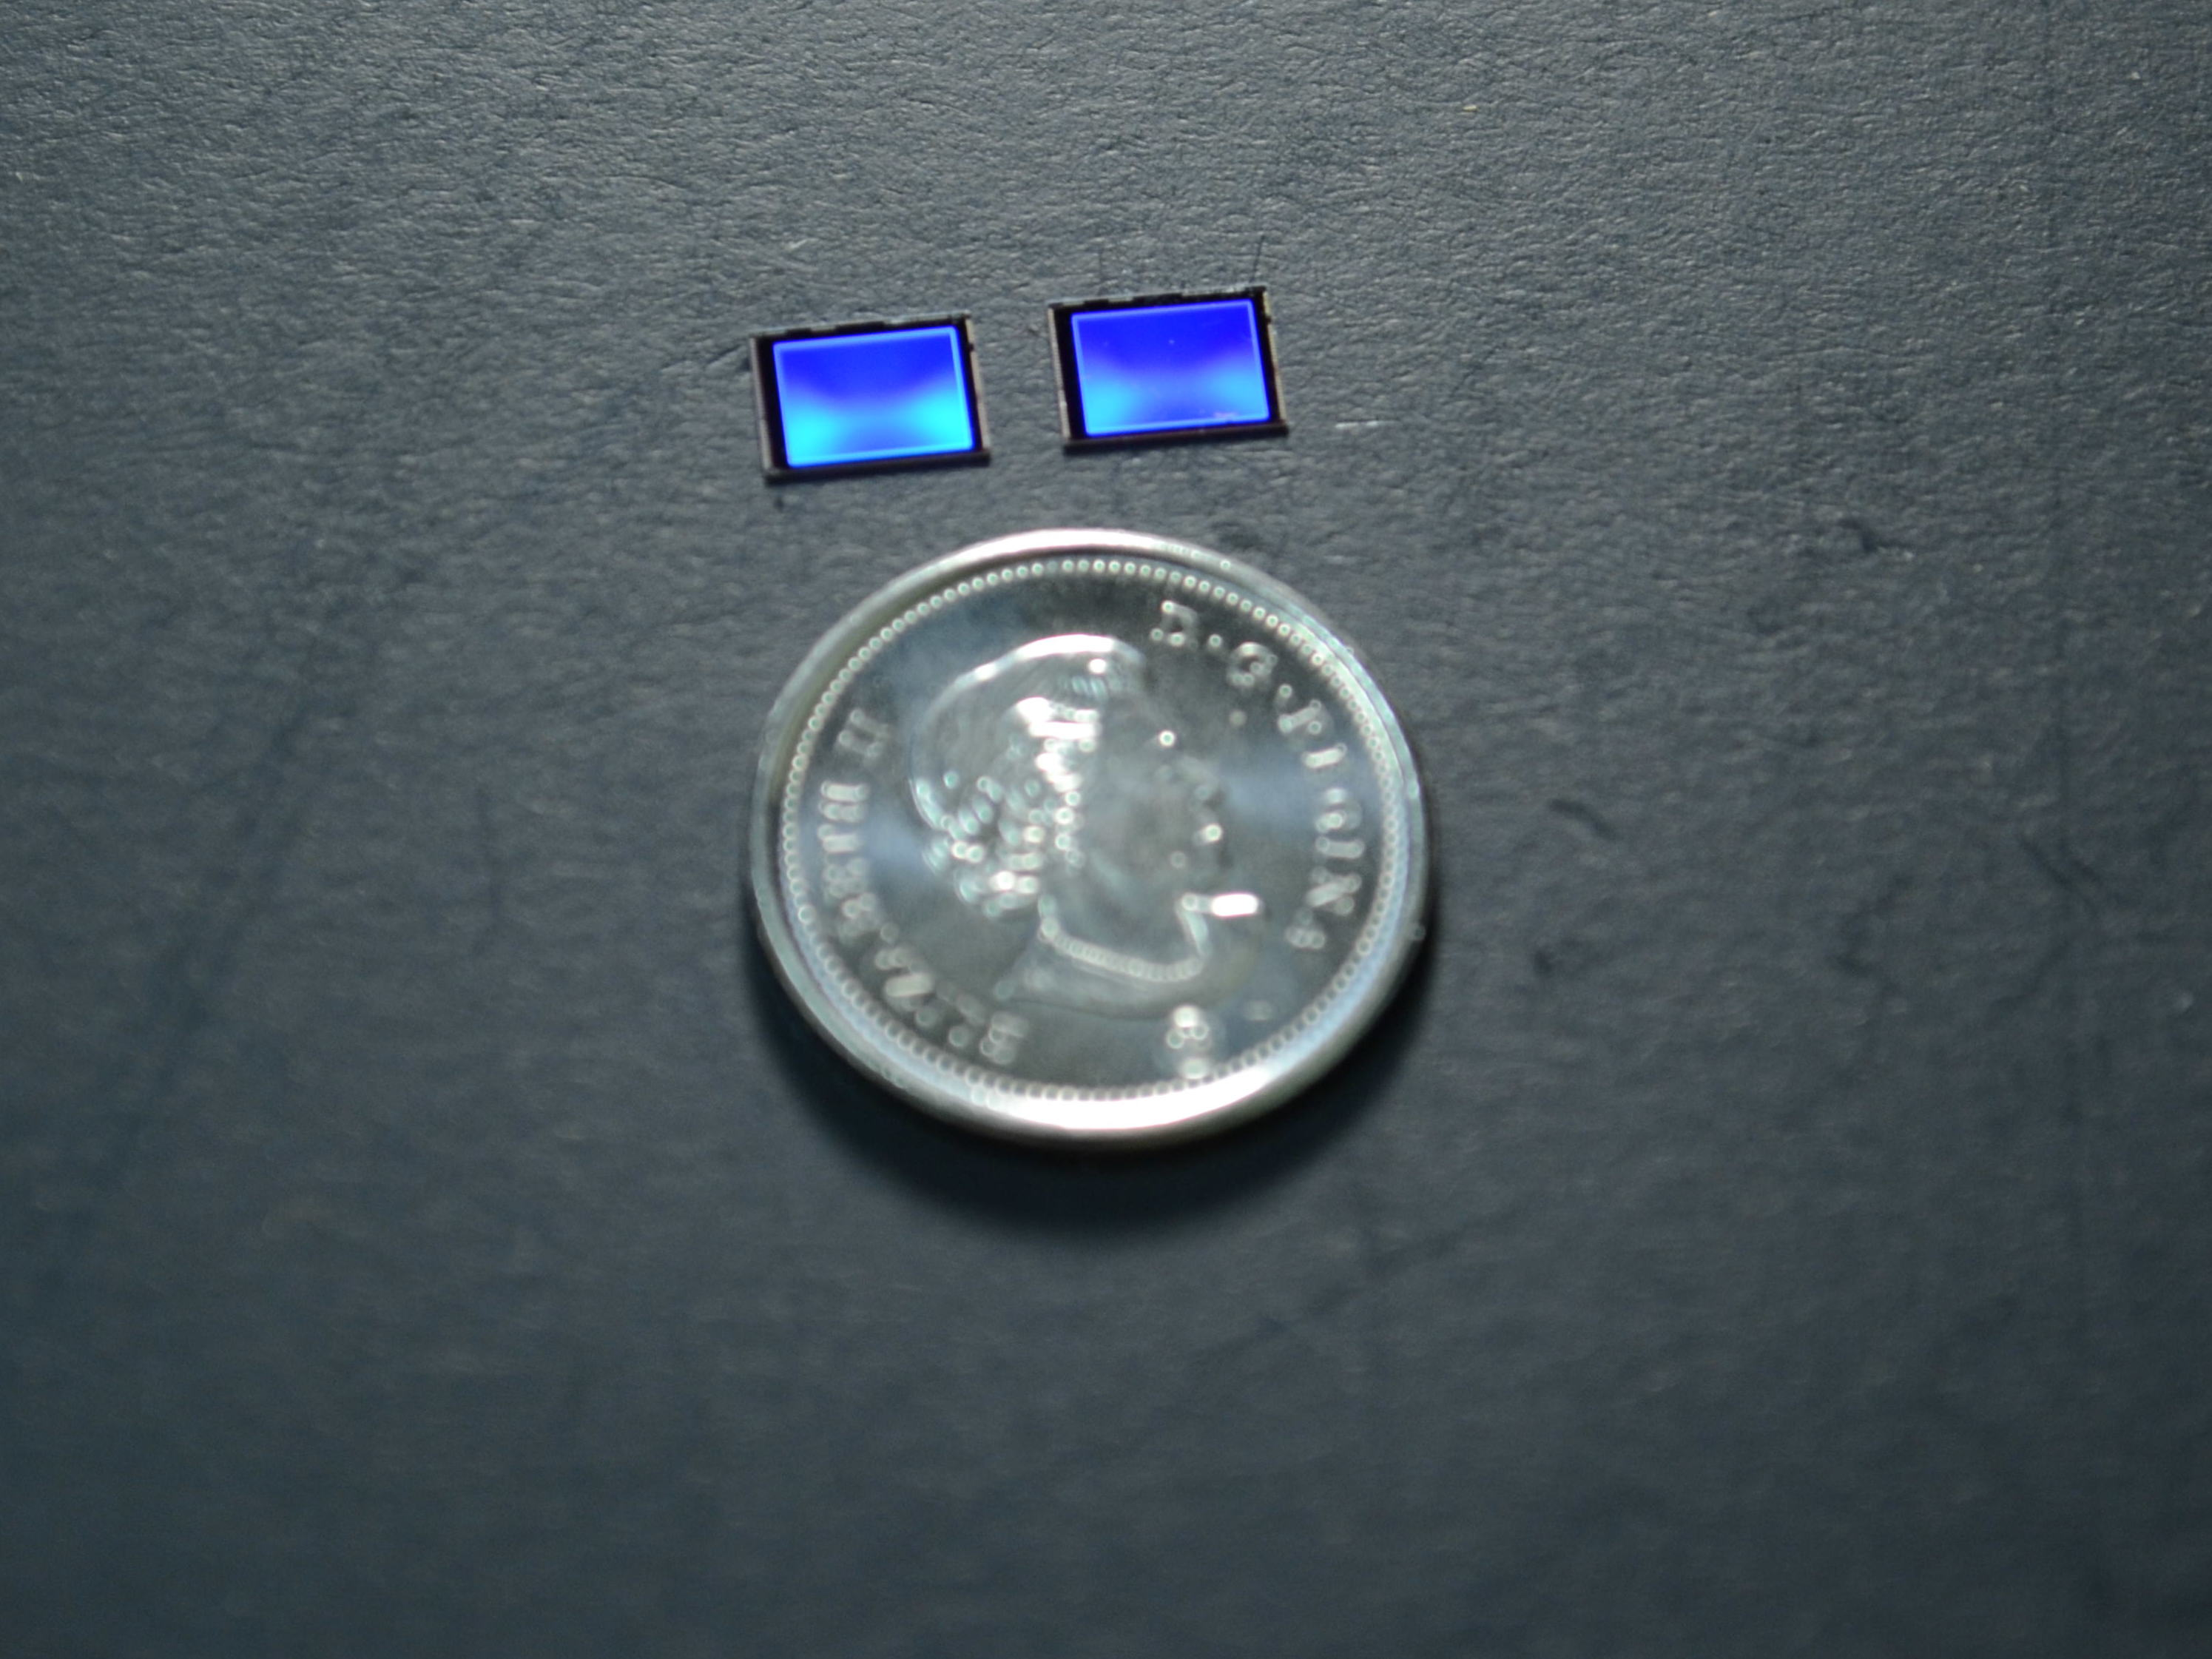 Two 5x7 mm imager chips - a bare one that is 2D and another with AIRY3D's patented TDM that is 3D